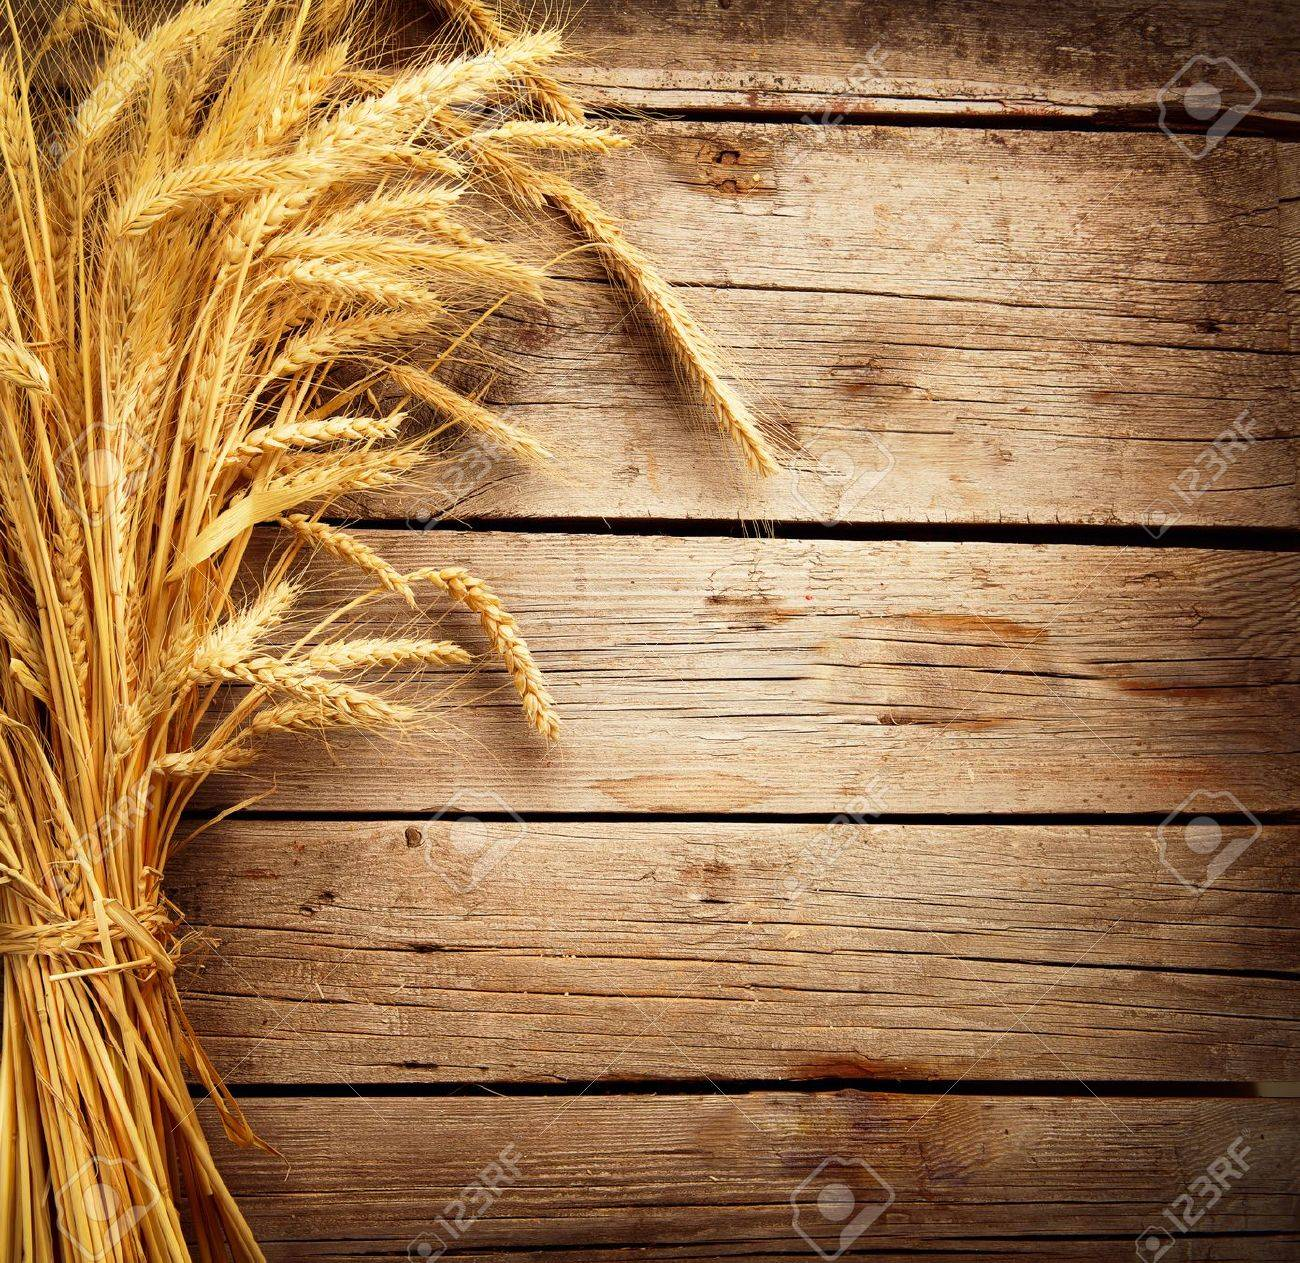 Wheat Ears on the Wooden Table  Harvest concept Stock Photo - 20934481